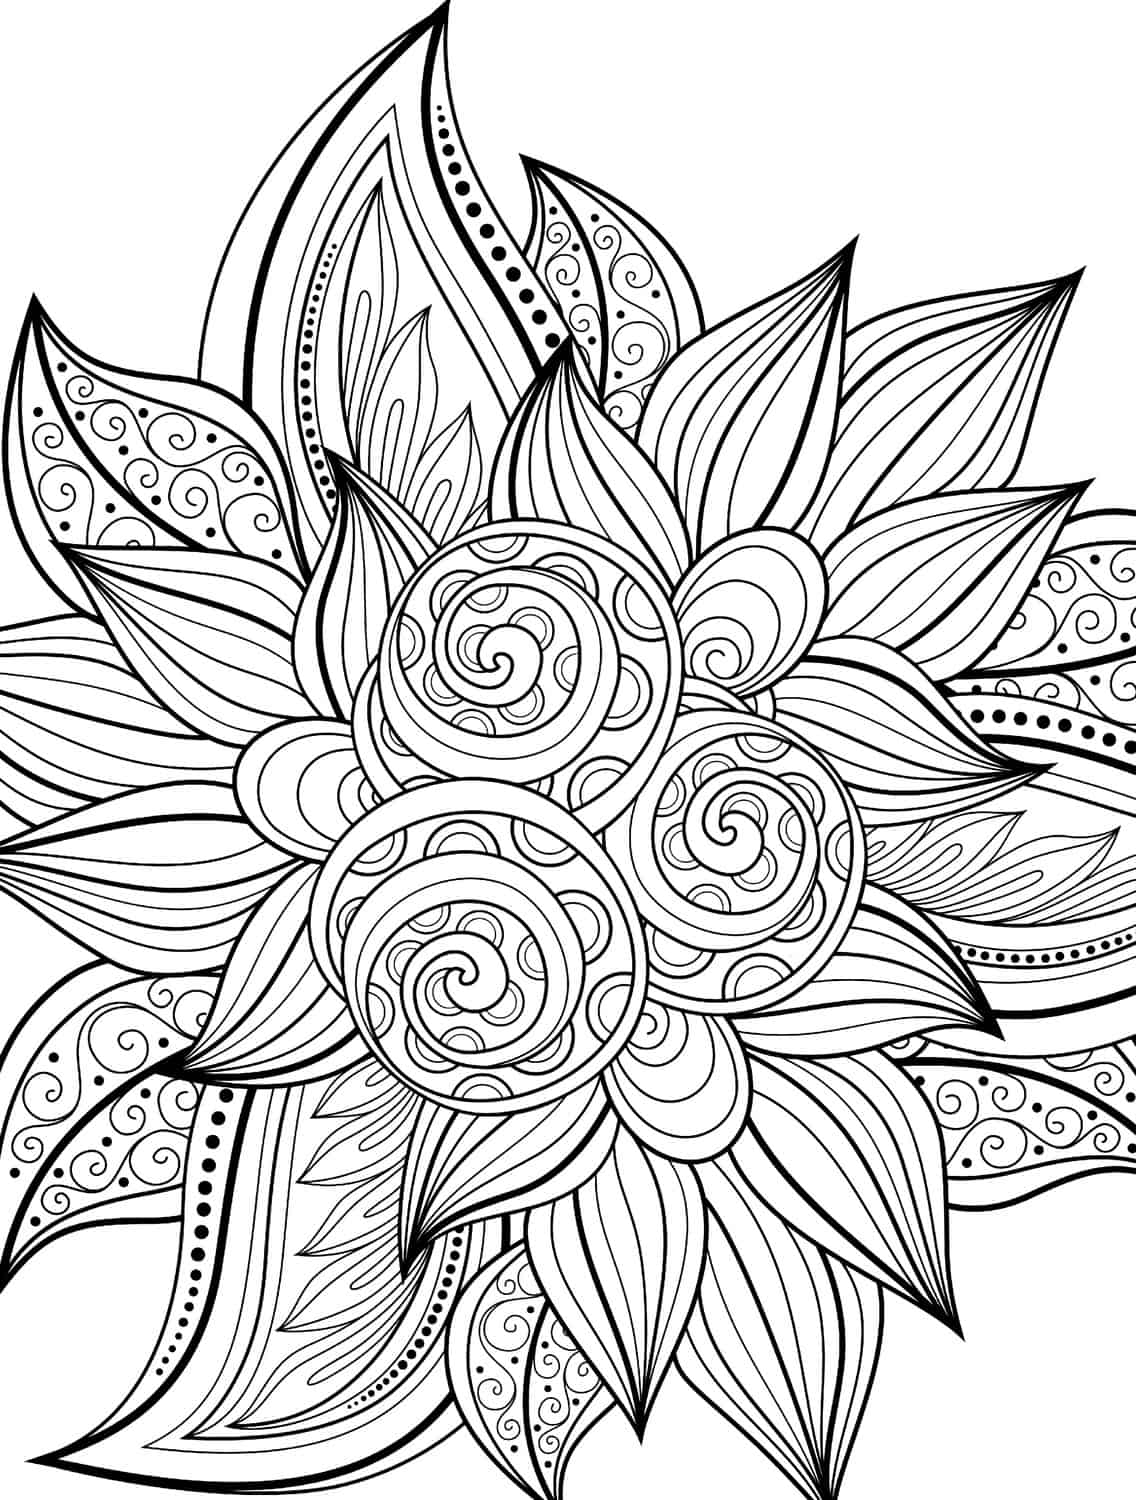 10 free printable holiday adult coloring pages for Flower adult coloring pages